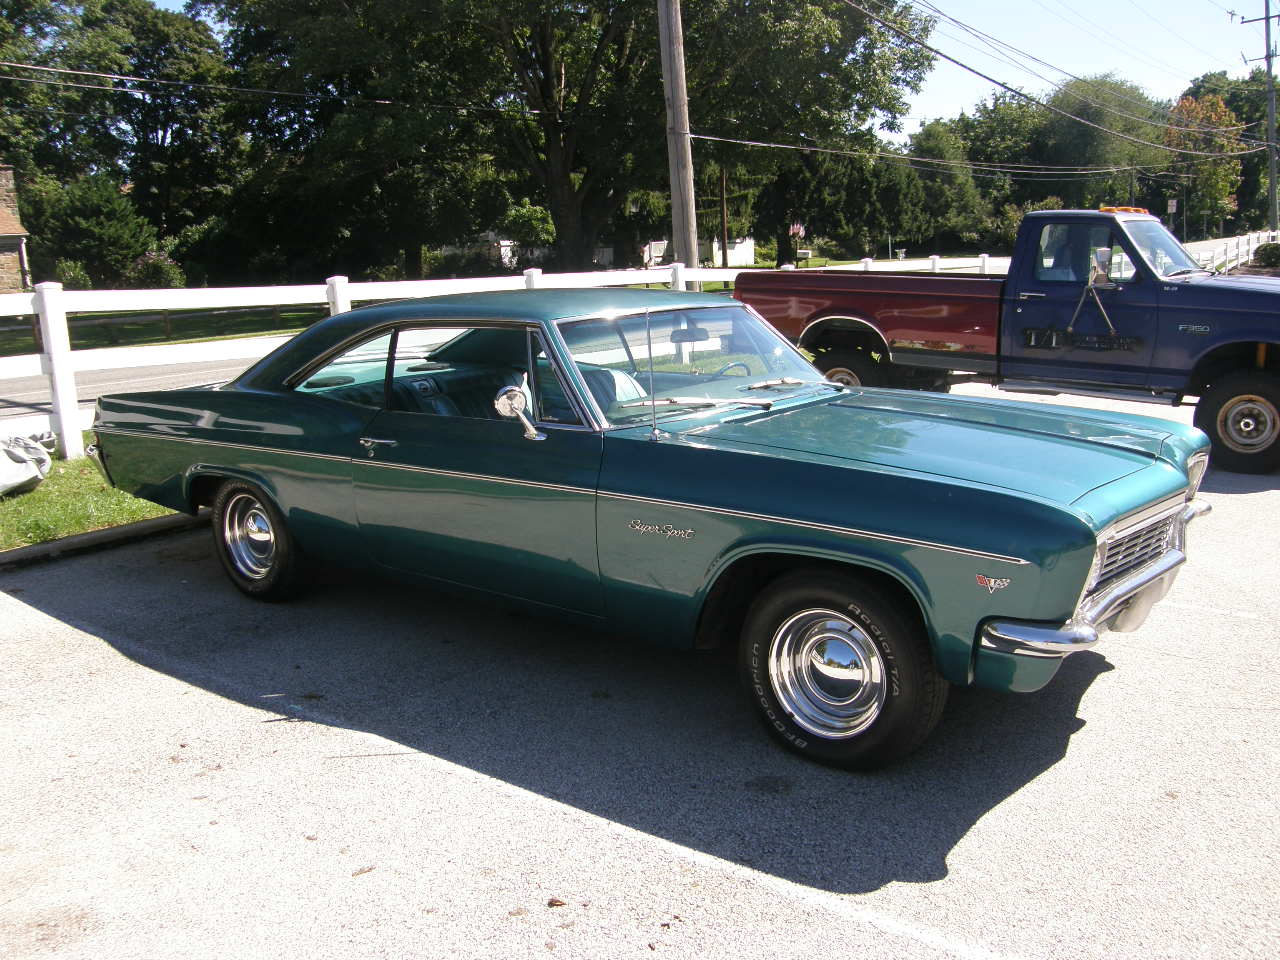 1966 Impala Ss Build Page 2 Chevy Forums Click Image For Larger Version Name P9060076 Views 4679 Size 2024